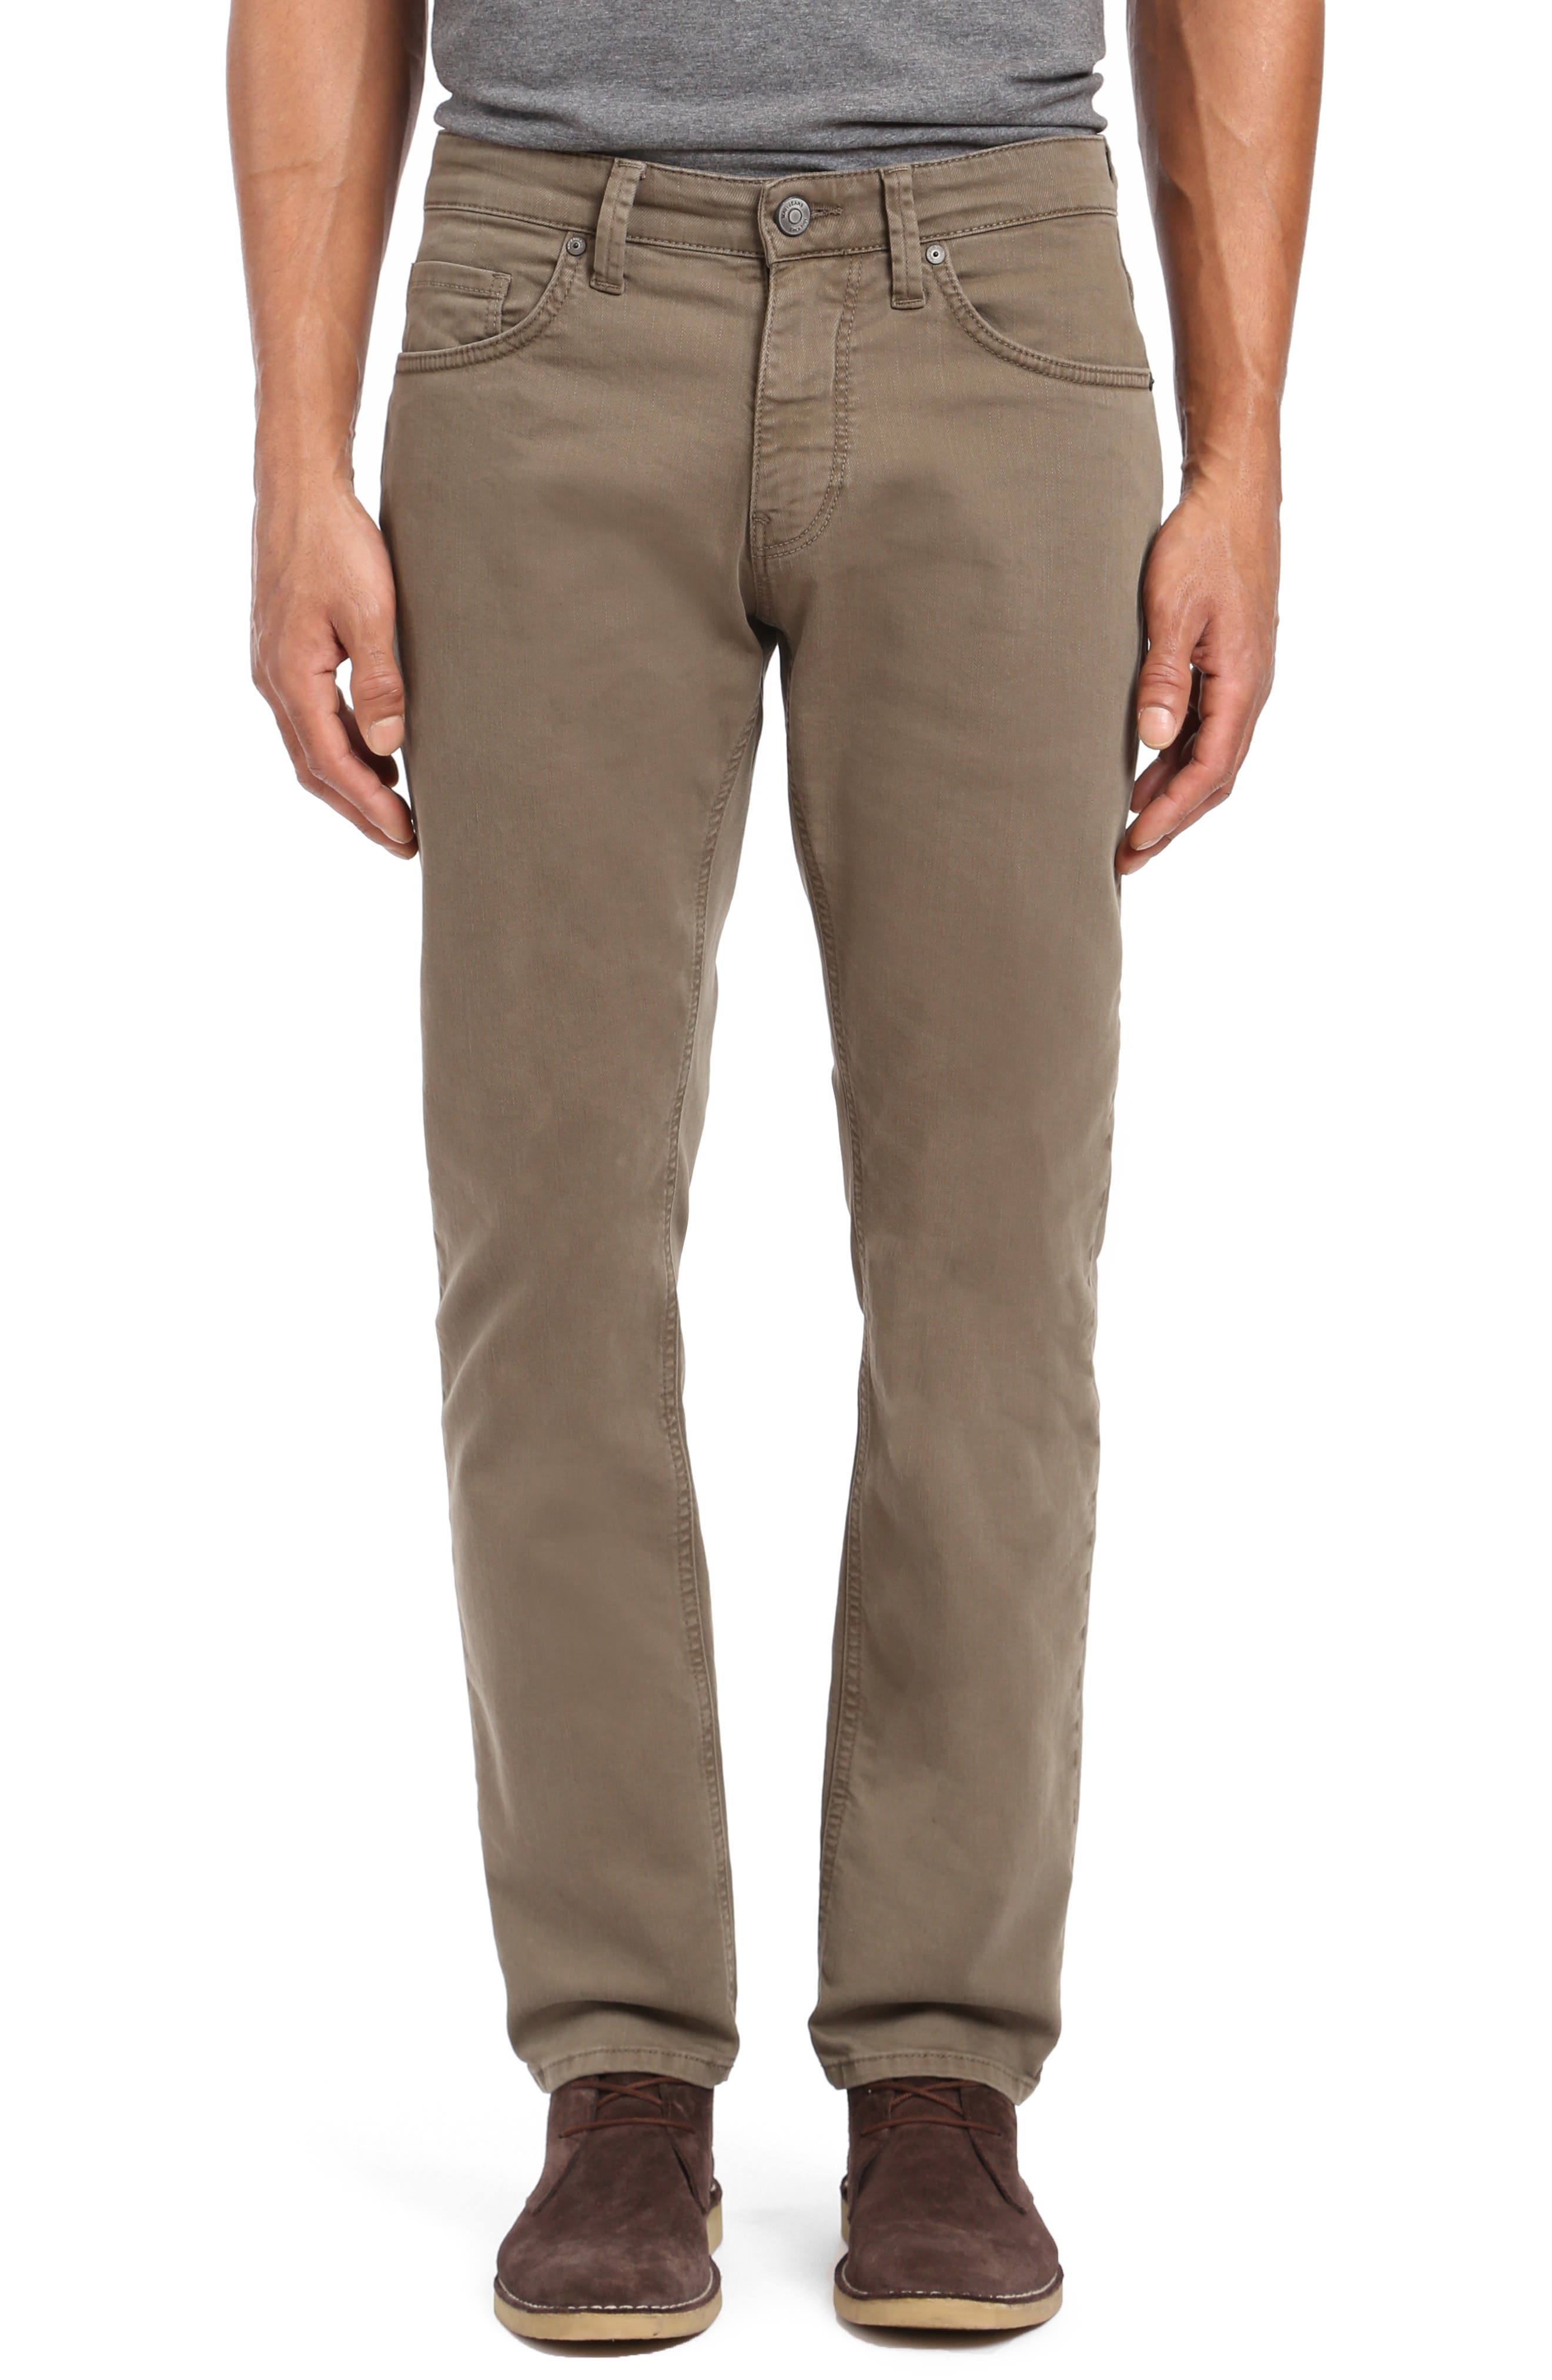 Zach Straight Leg Jeans,                             Main thumbnail 1, color,                             KHAKI WASHED COMFORT